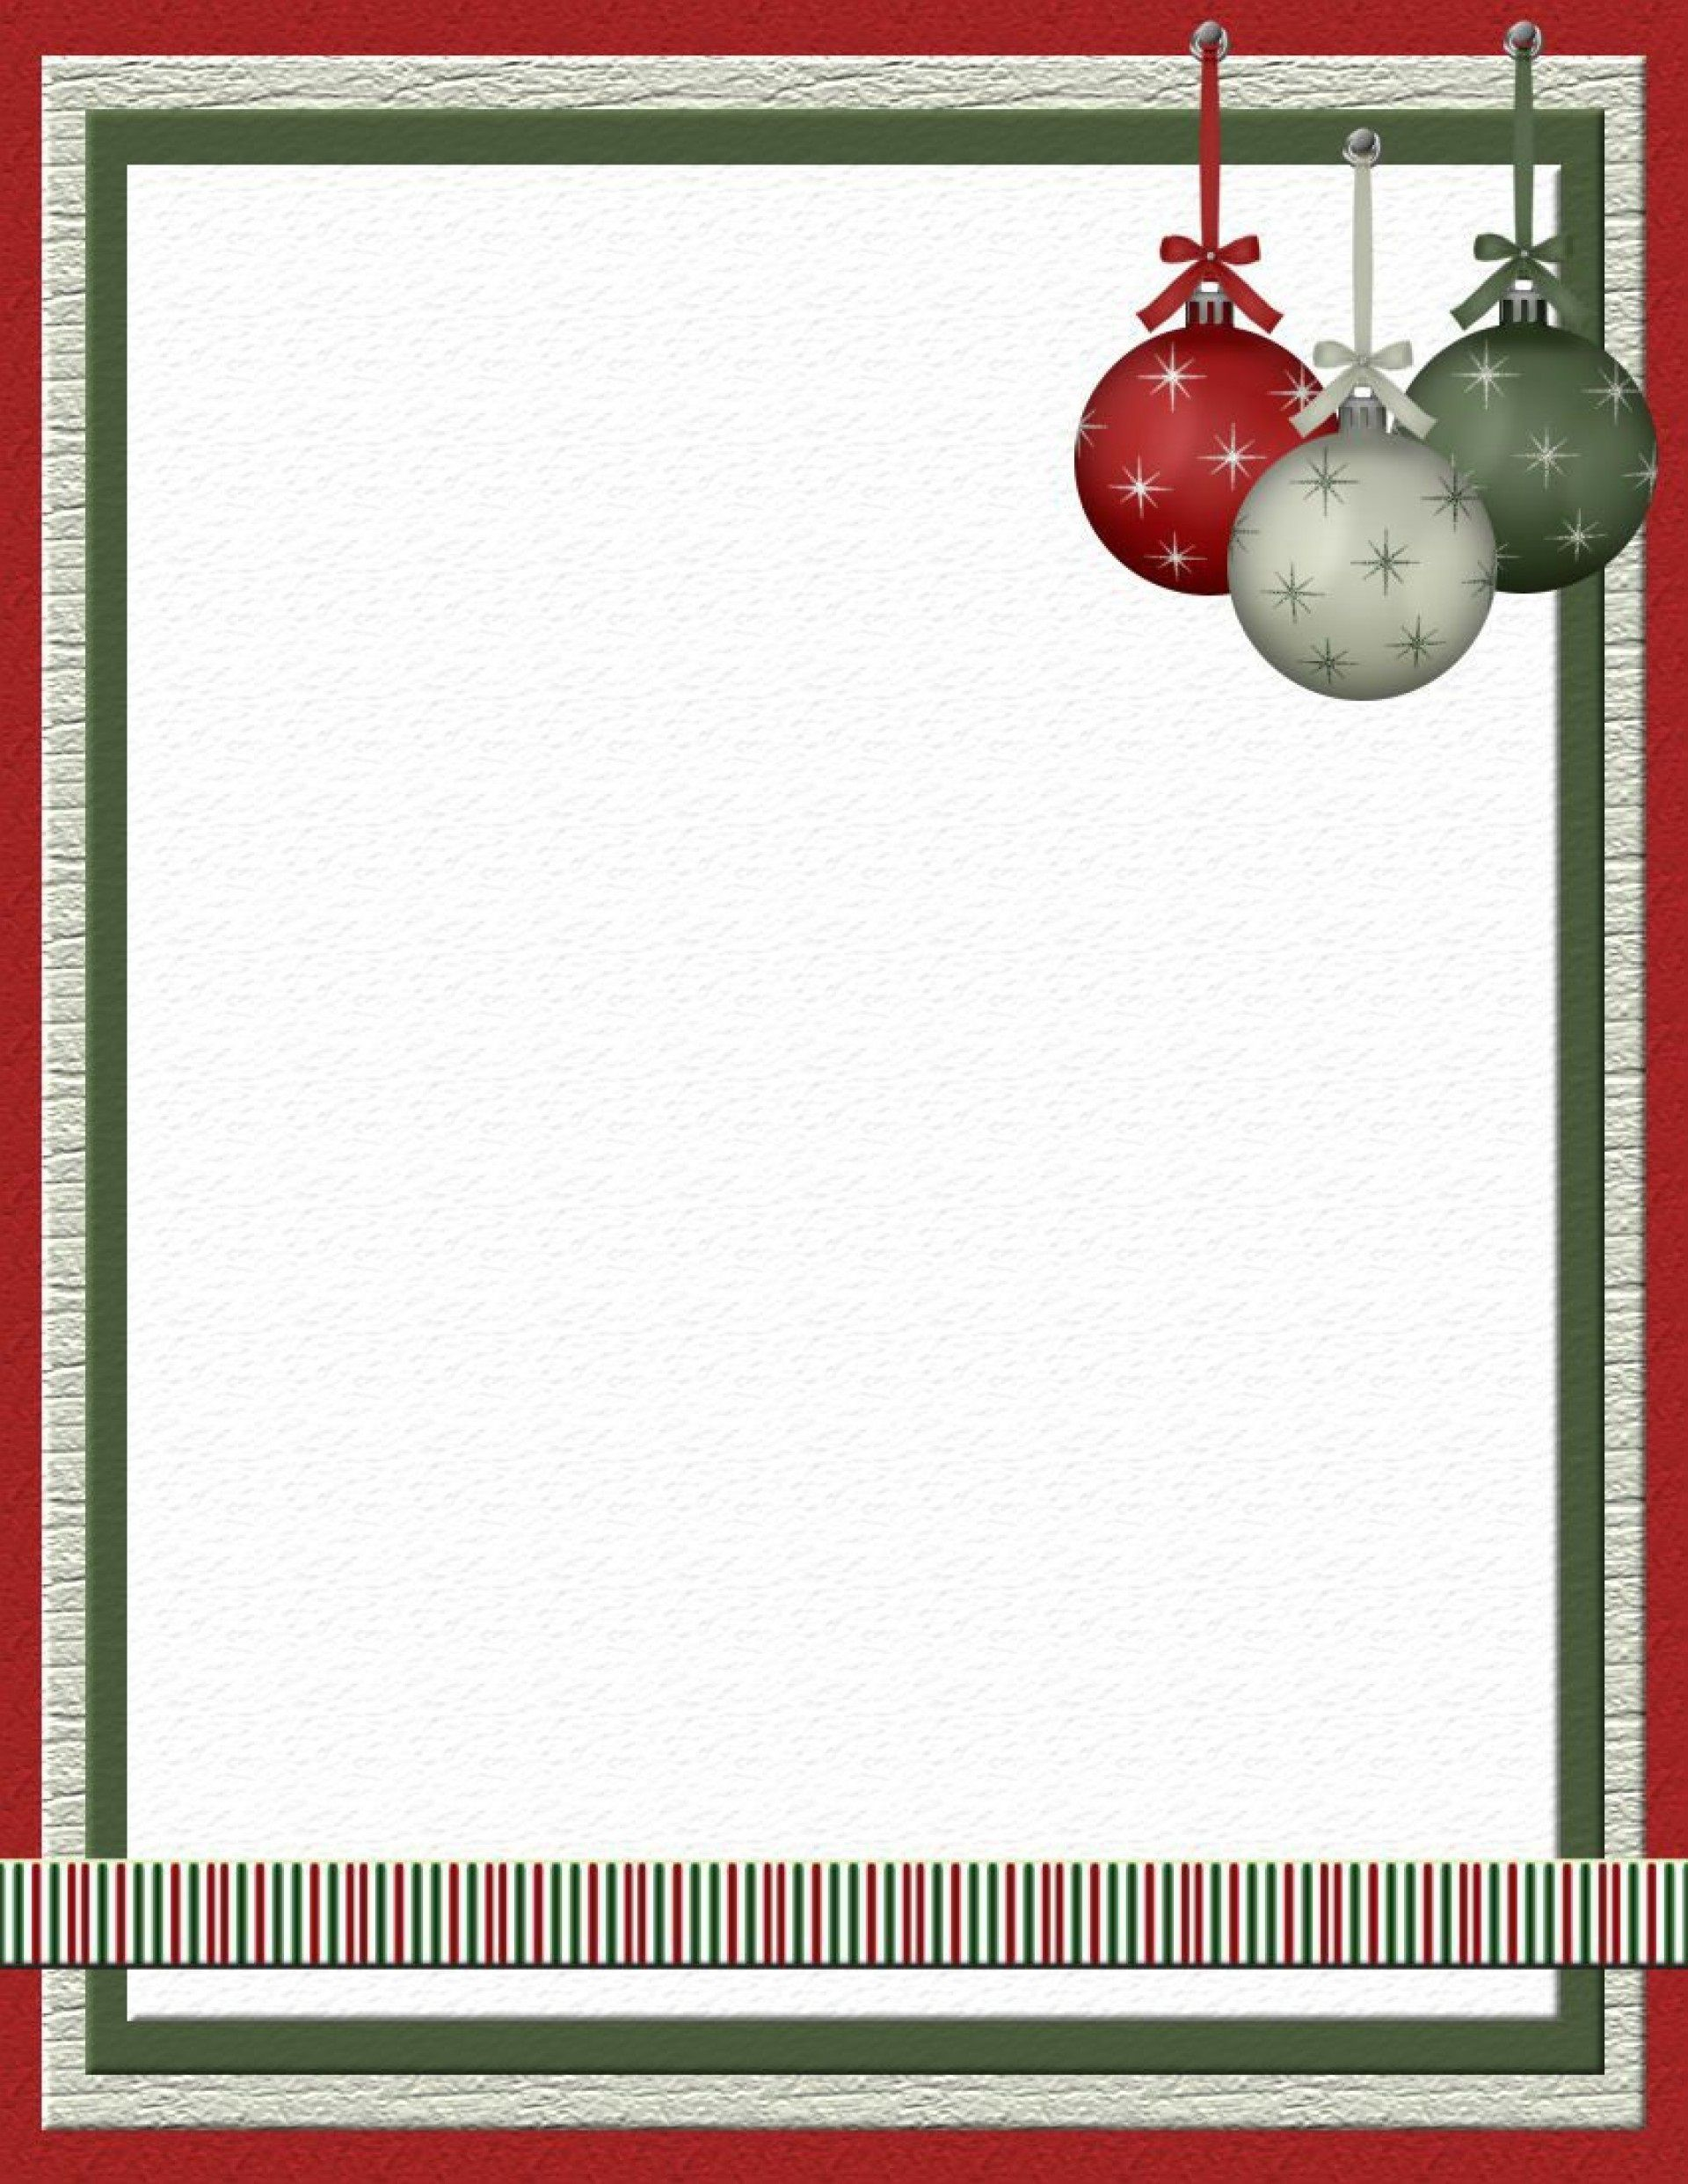 006 Stupendou Free Christian Christma Stationery Template For Word High Definition Full